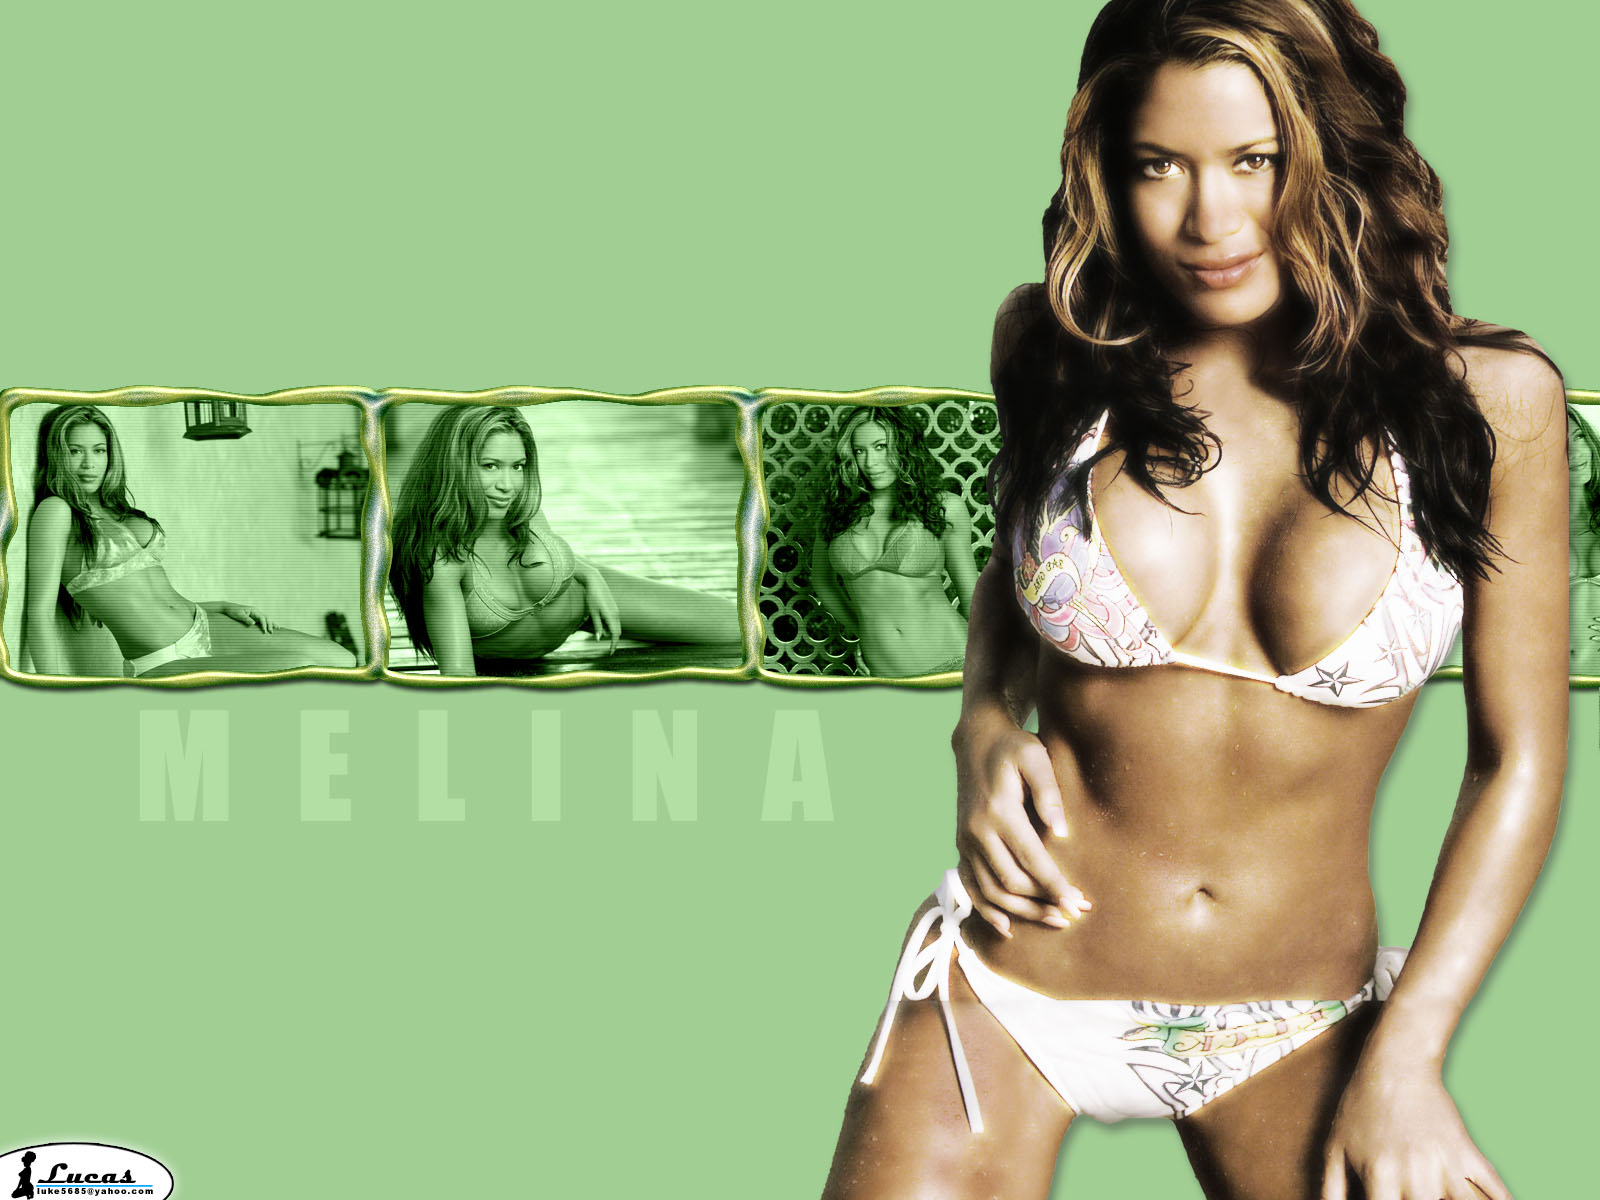 You are viewing the Wrestling wallpaper named Wrestling 33.